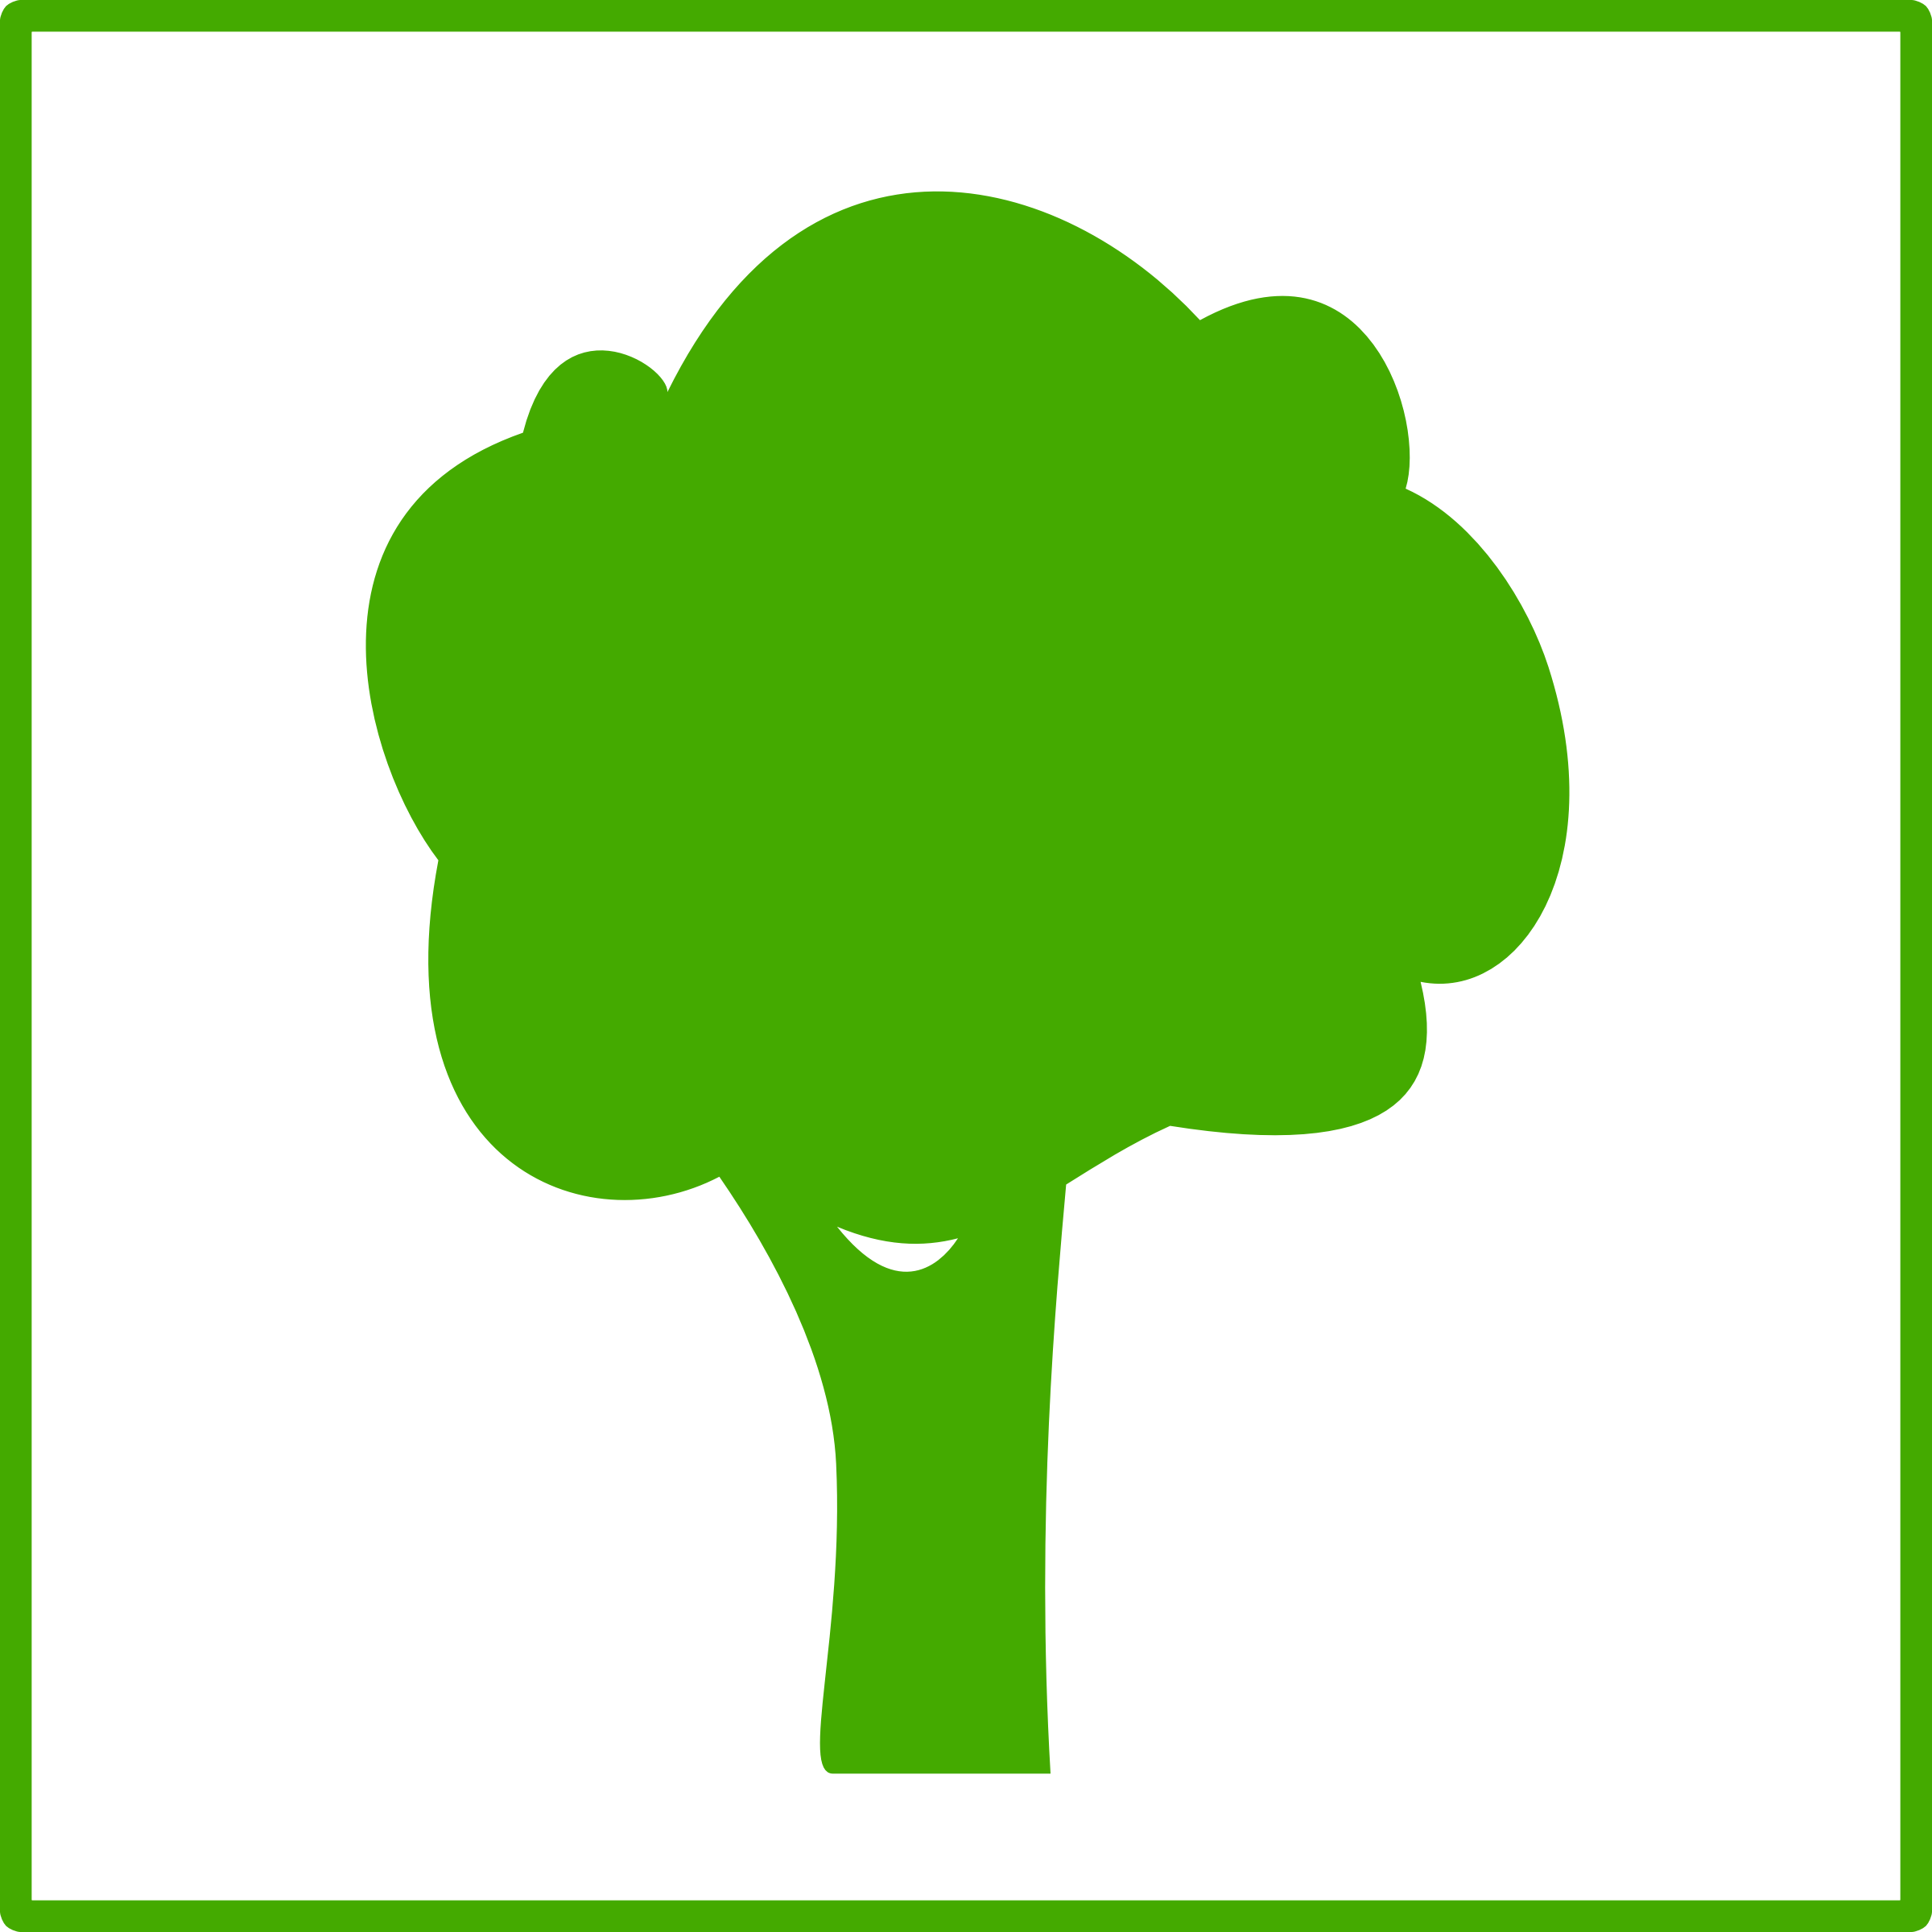 Eco green tree icon by dominiquechappard